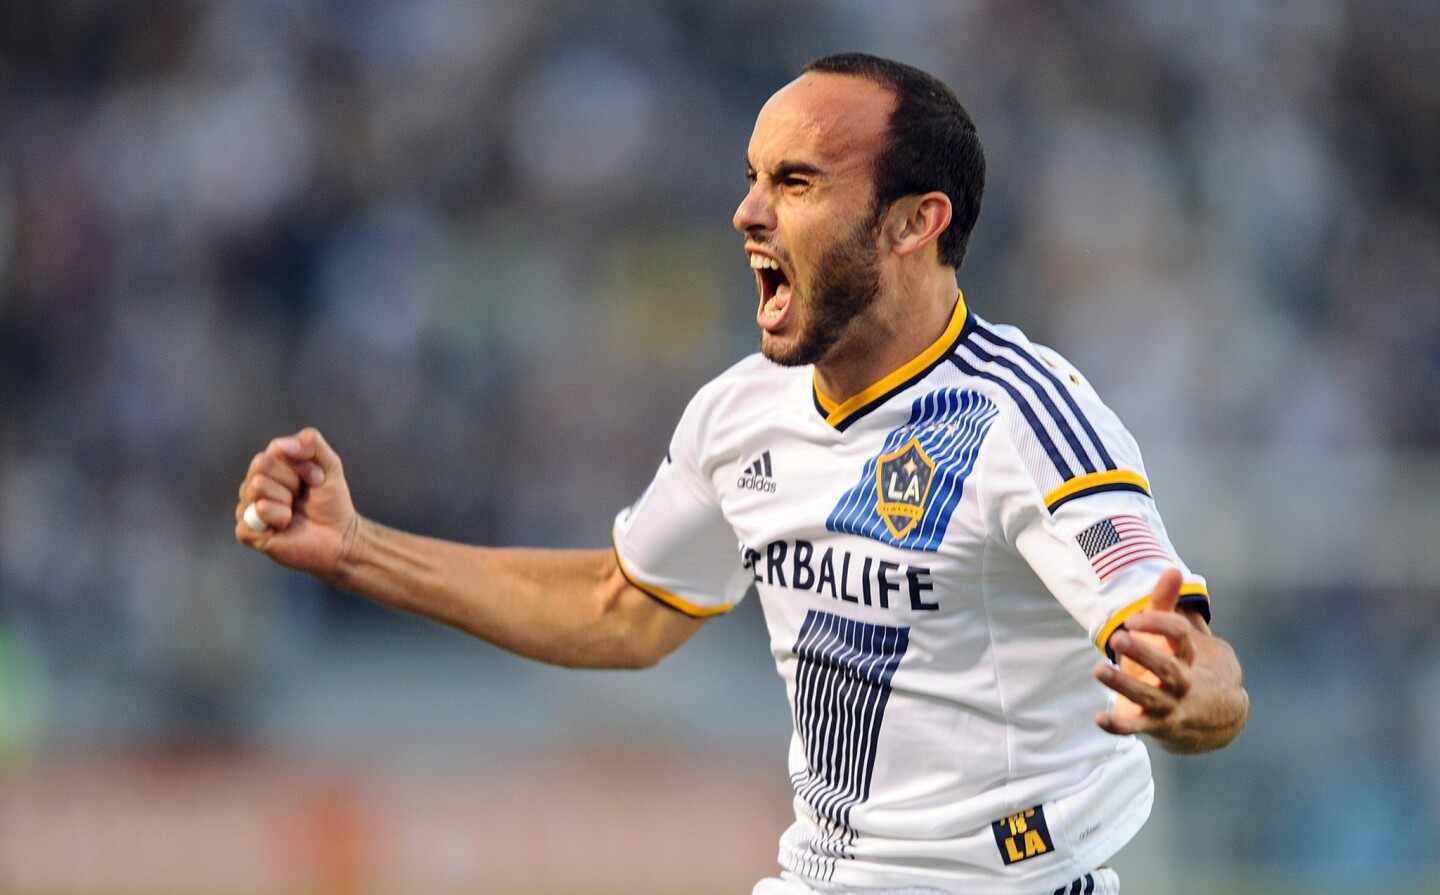 Galaxy midfielder Landon Donovan reacts after scoring the first of his three goals against Real Salt Lake in an MLS playoff game on Sunday at StubHub Center.